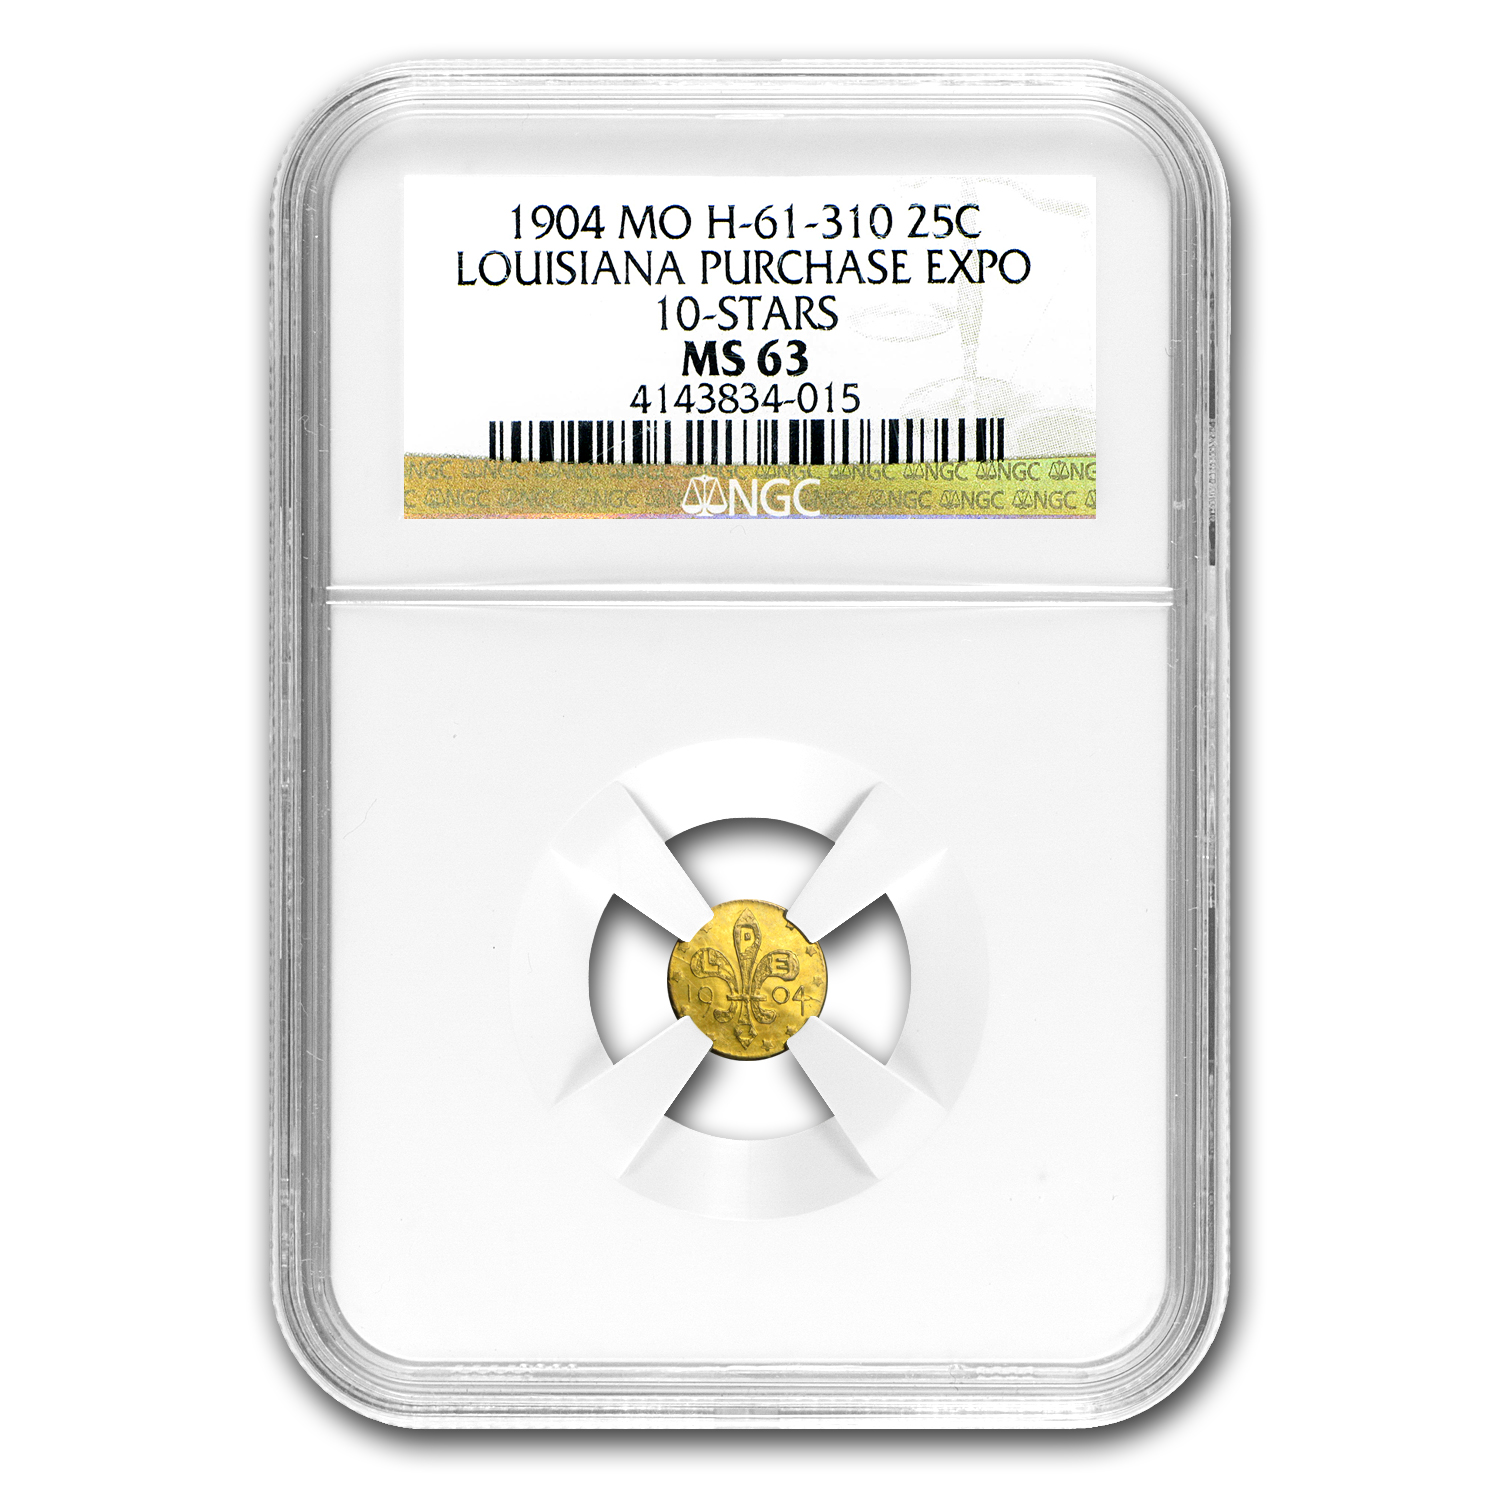 1904 Louisiana Purchase Expo 10-Stars Gold Token MS-63 NGC